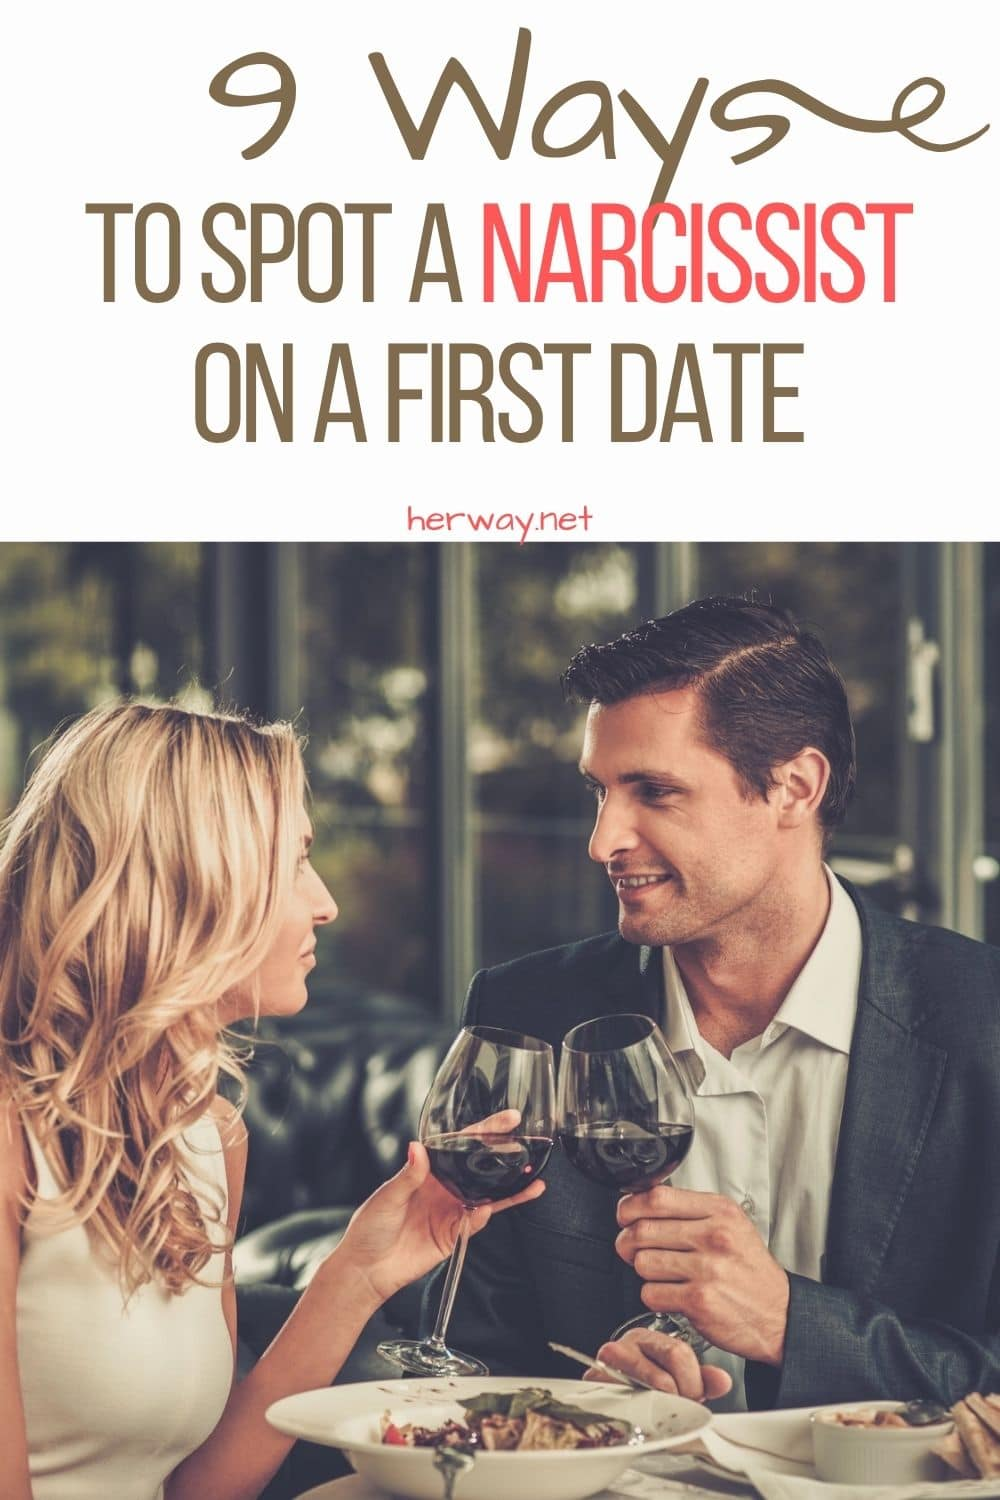 9 Ways To Spot A Narcissist On A First Date